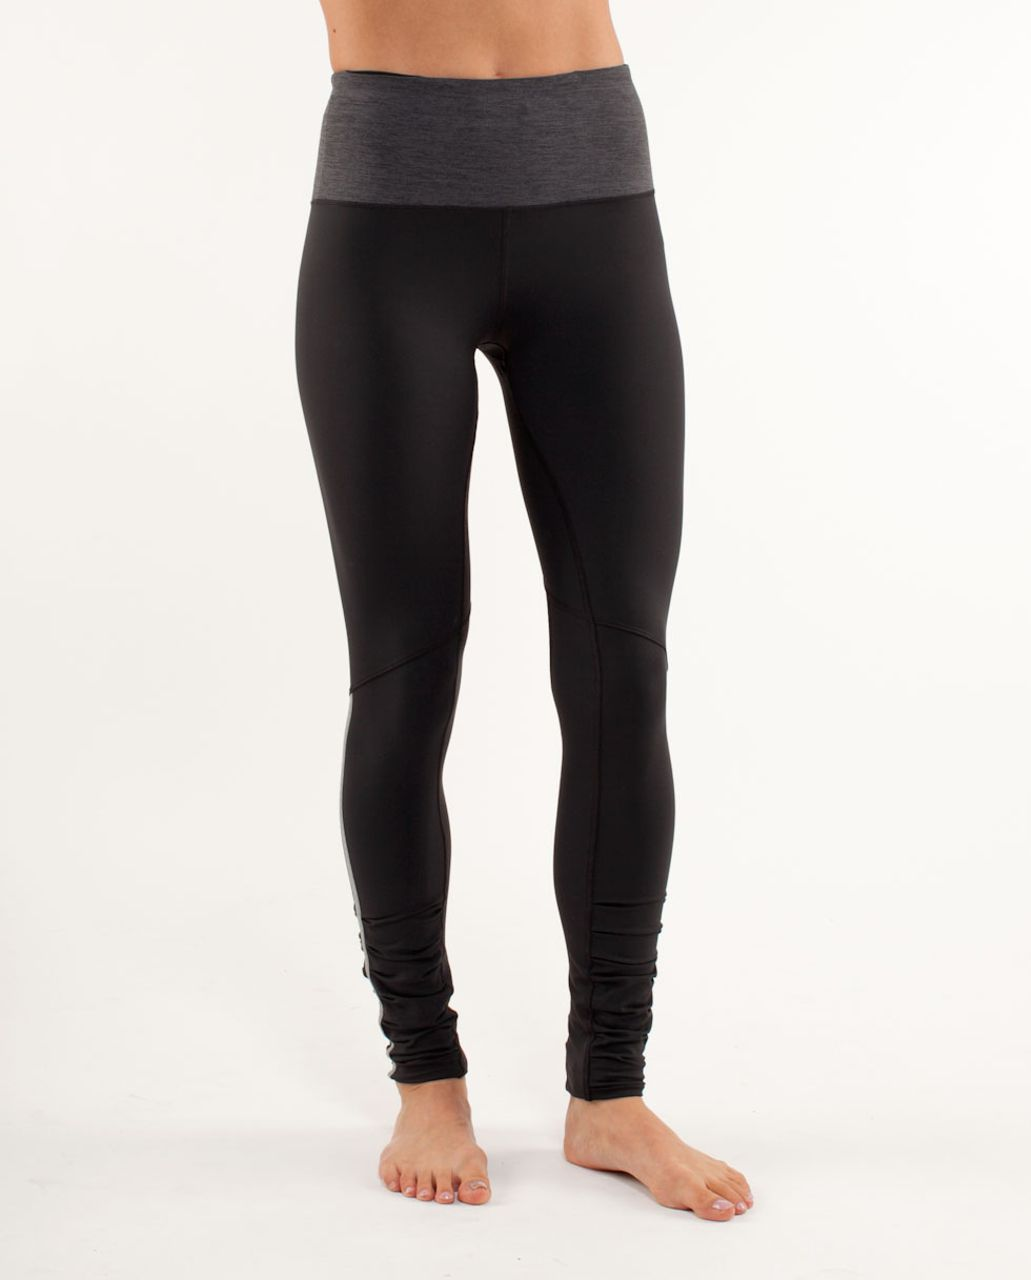 Lululemon Run:  Back on Track Tight - Black /  Heathered Black